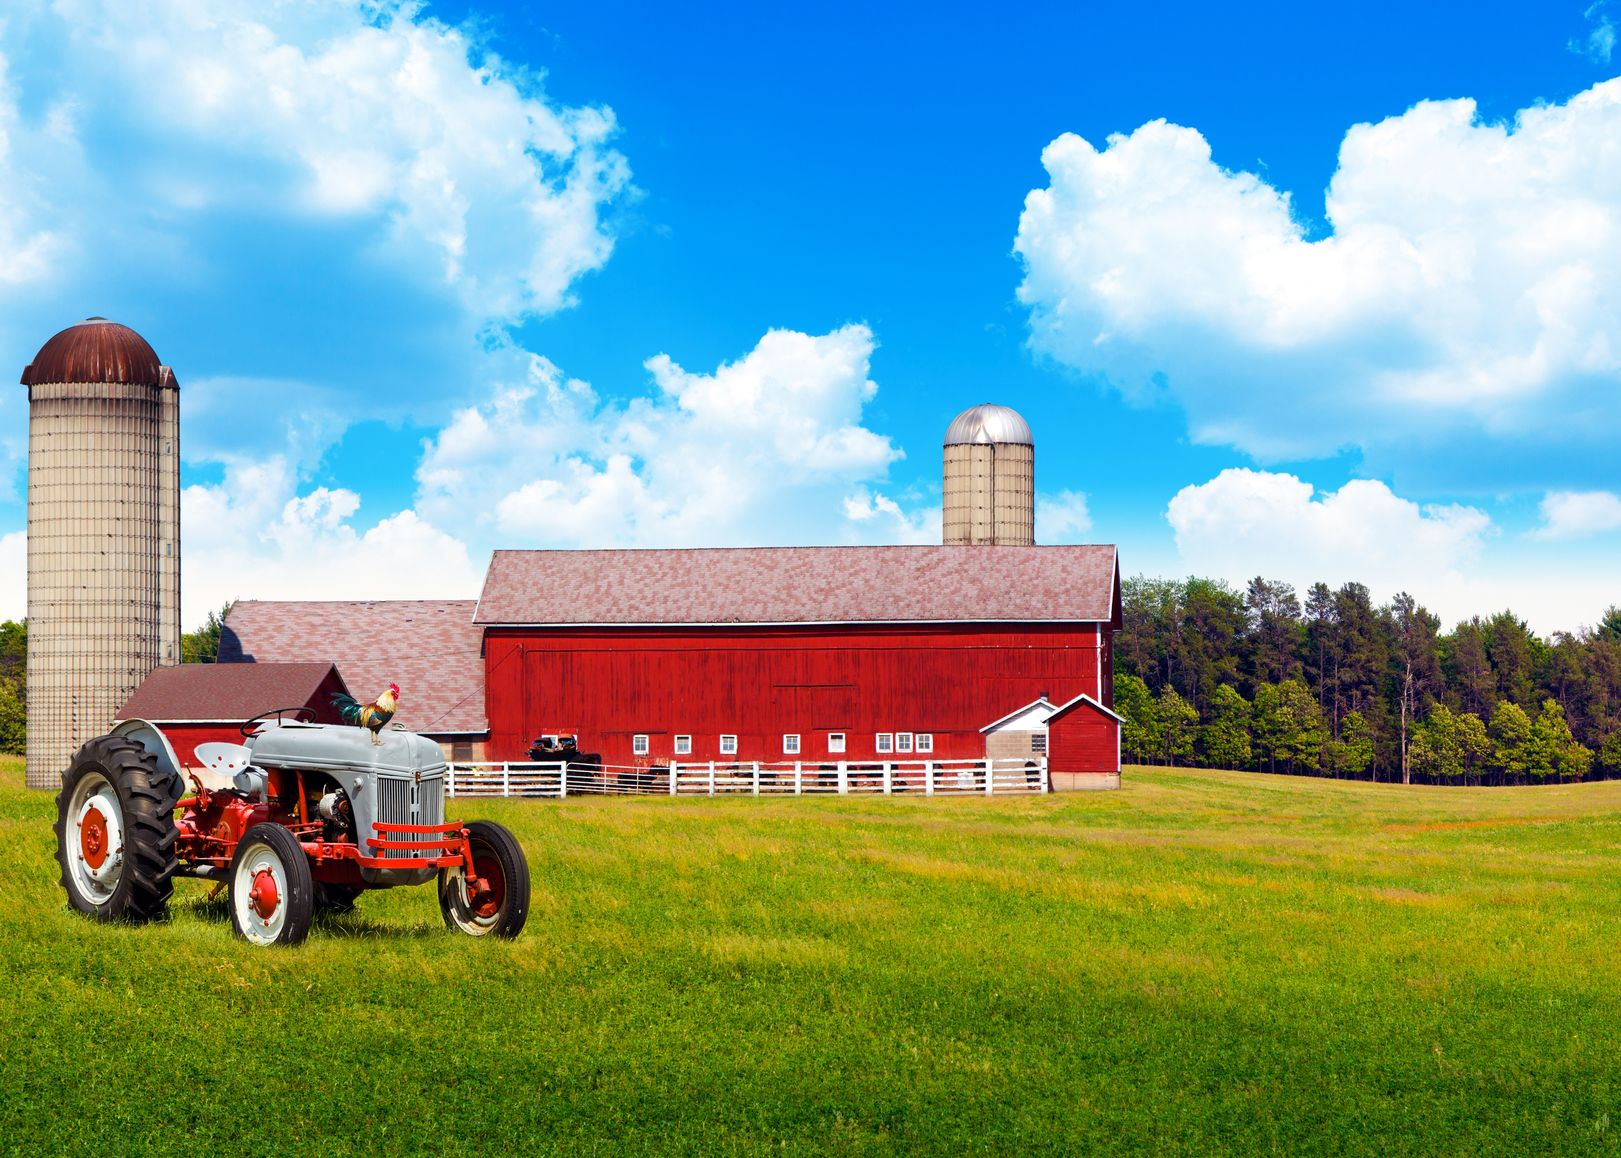 Carlsbad, CA. Farm & Ranch Insurance